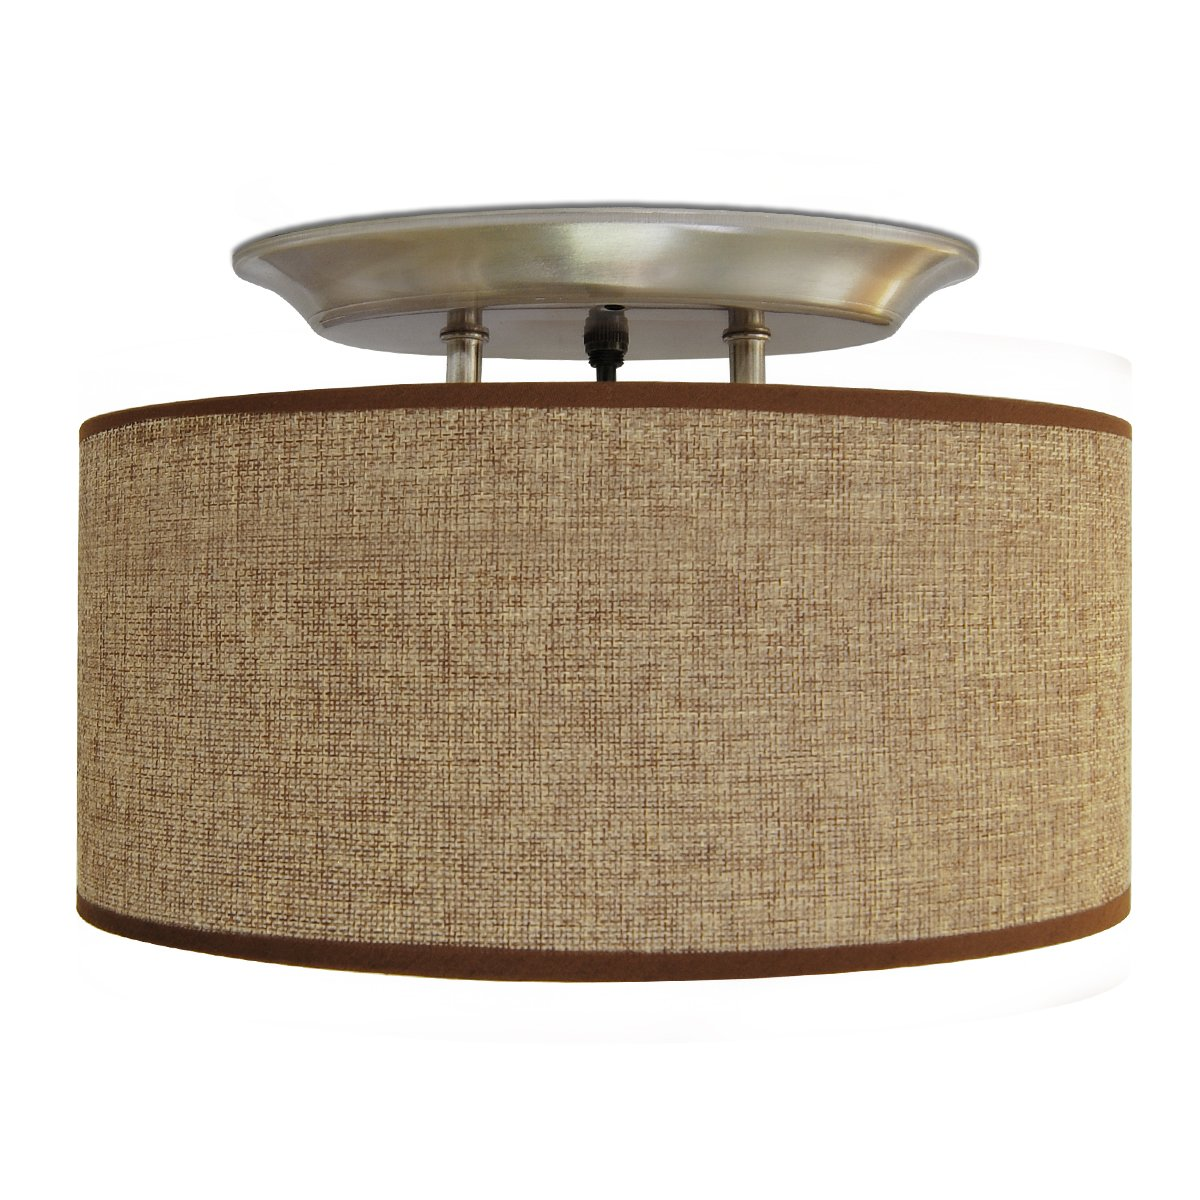 Dream Lighting 12V Fabric Light Fixture with Brown Burlap Elliptical Oval Ceiling Light Shade - LED Decor Lamp with Switch- 0.49A, 6W,